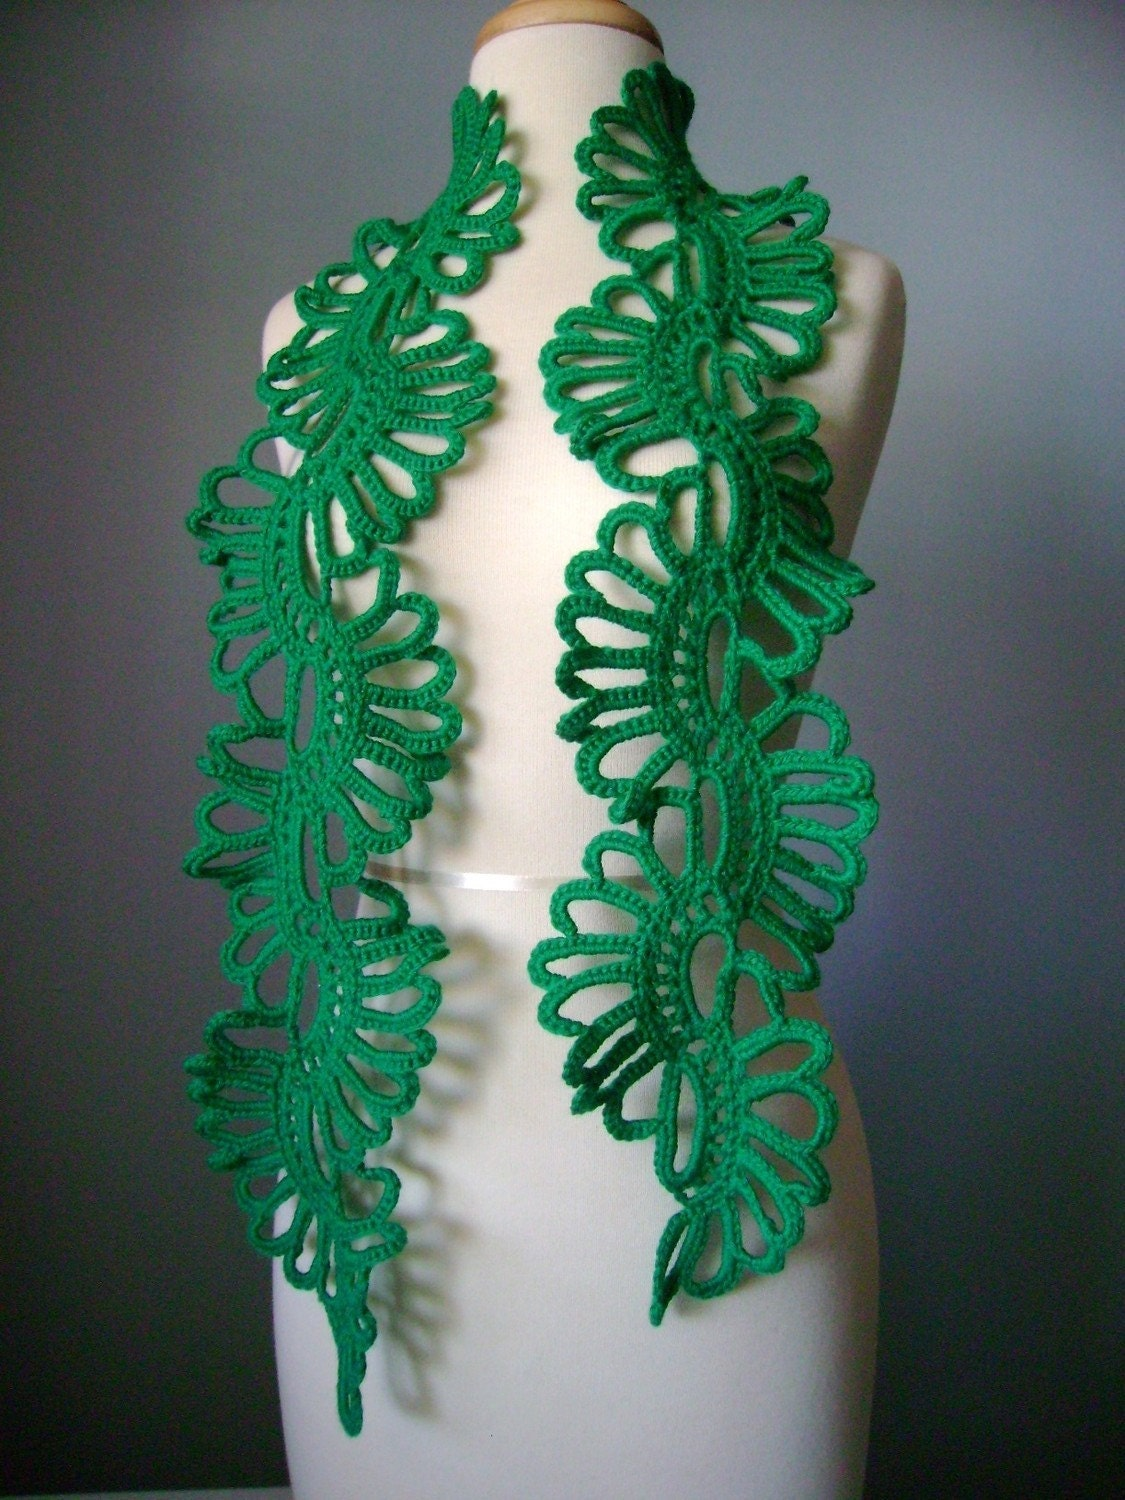 Crochet Green  scarf  neckwarmer lace wool Emeral epictt teamb  tpt team etsy team  HMET